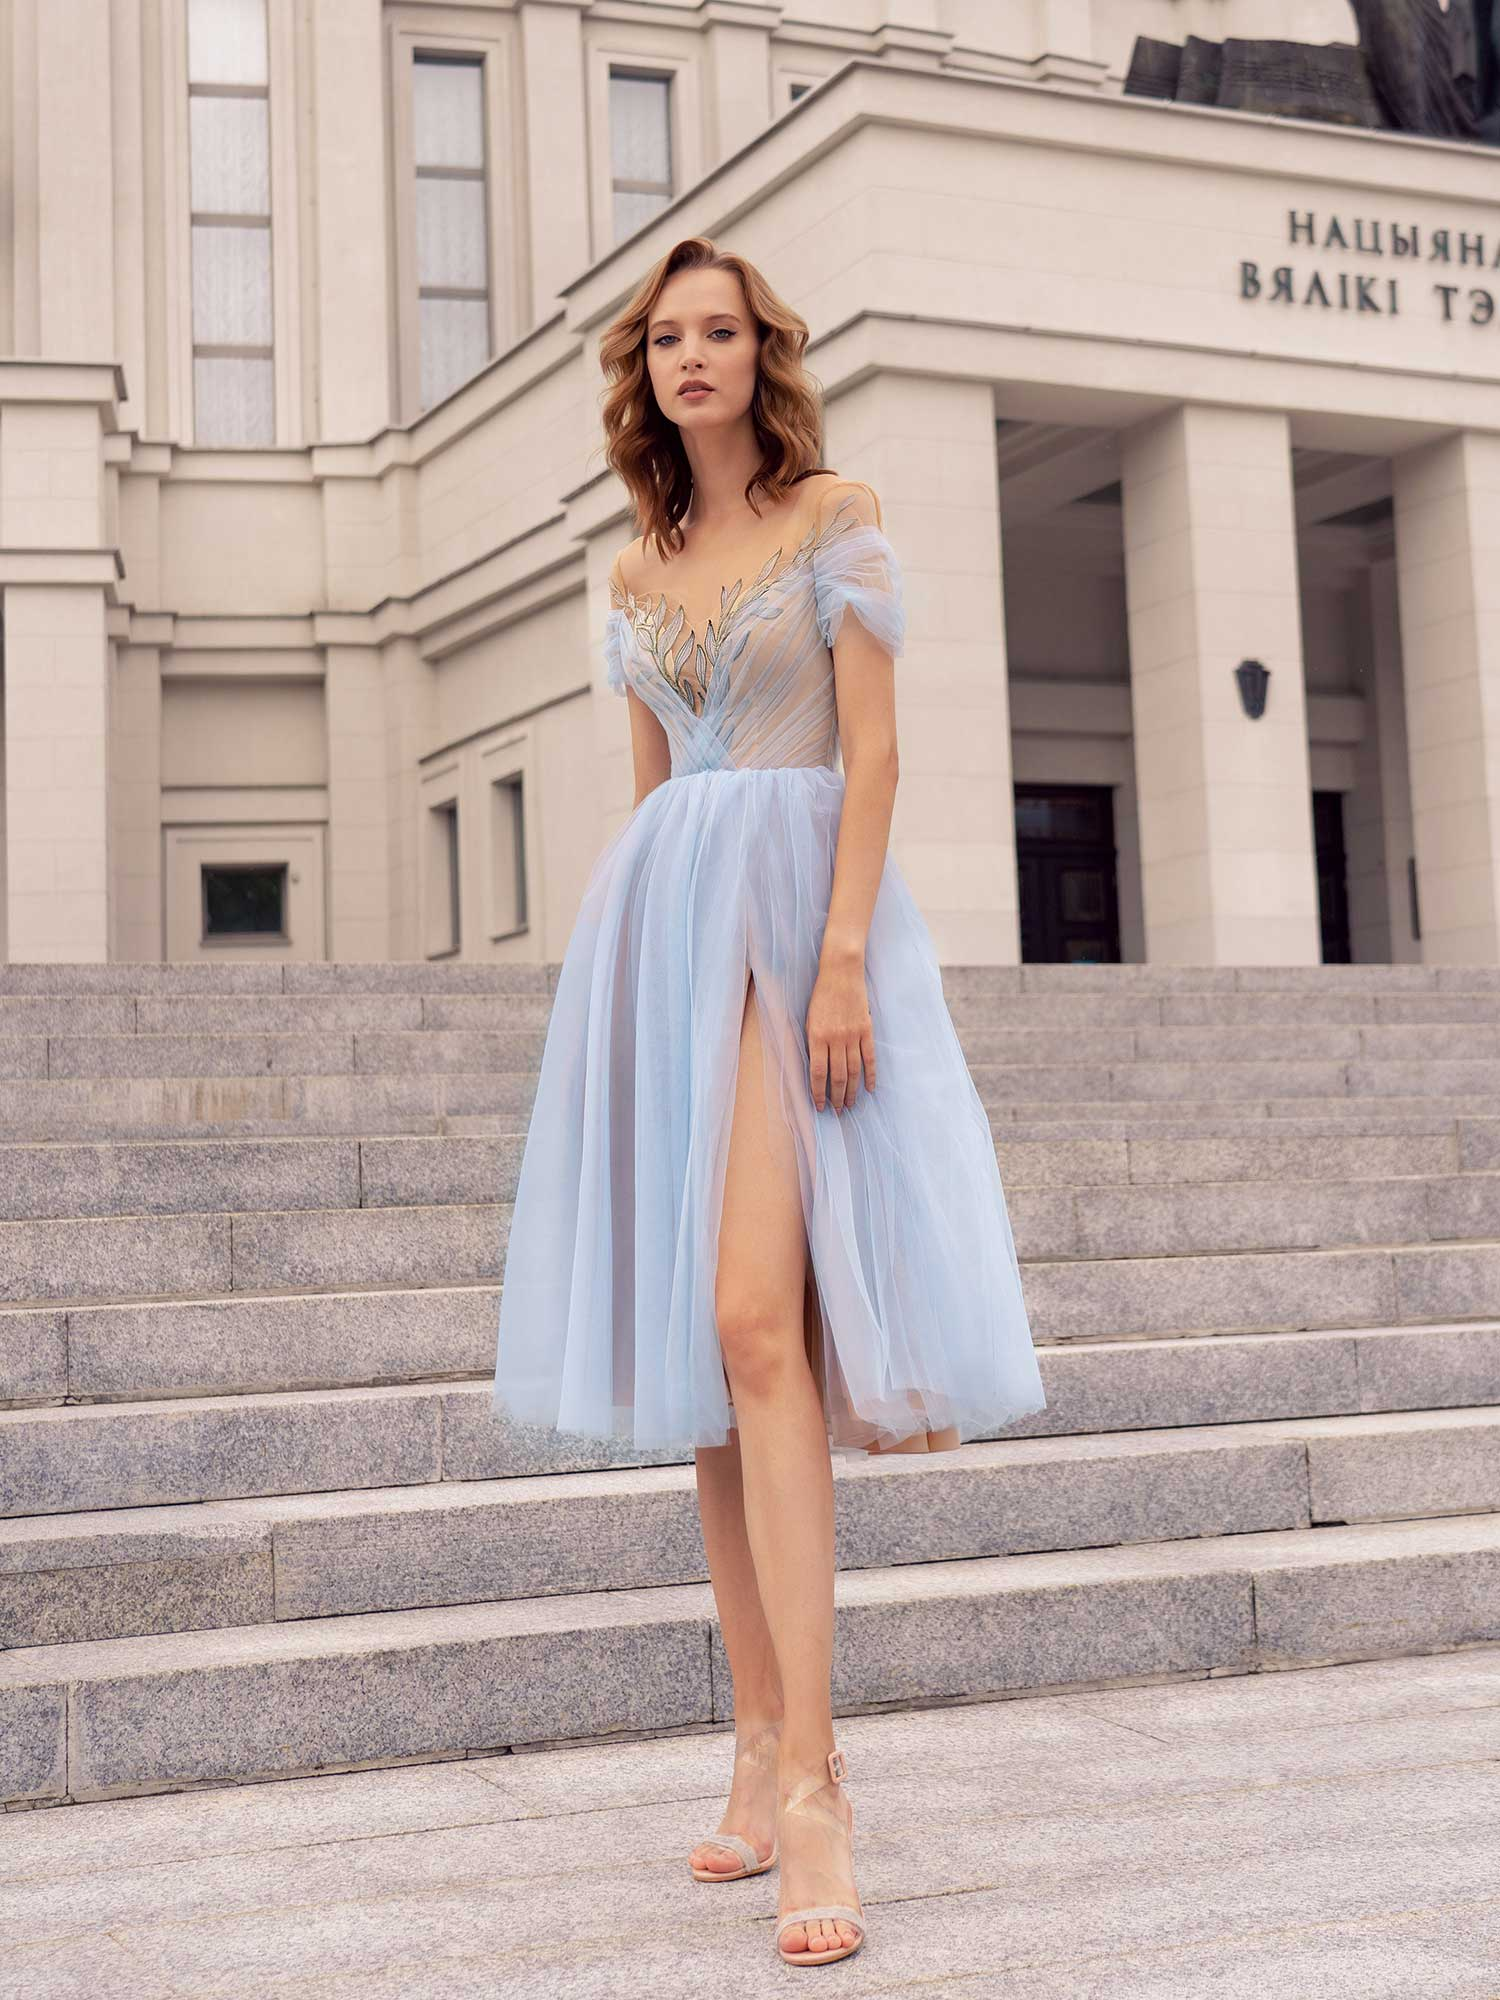 Style #545, gown with floral embroidery and slit up the leg, available in nude-blue, nude-lilac, nude-azure, nude-pink, nude-powder, nude-cherry, nude-black, ivory